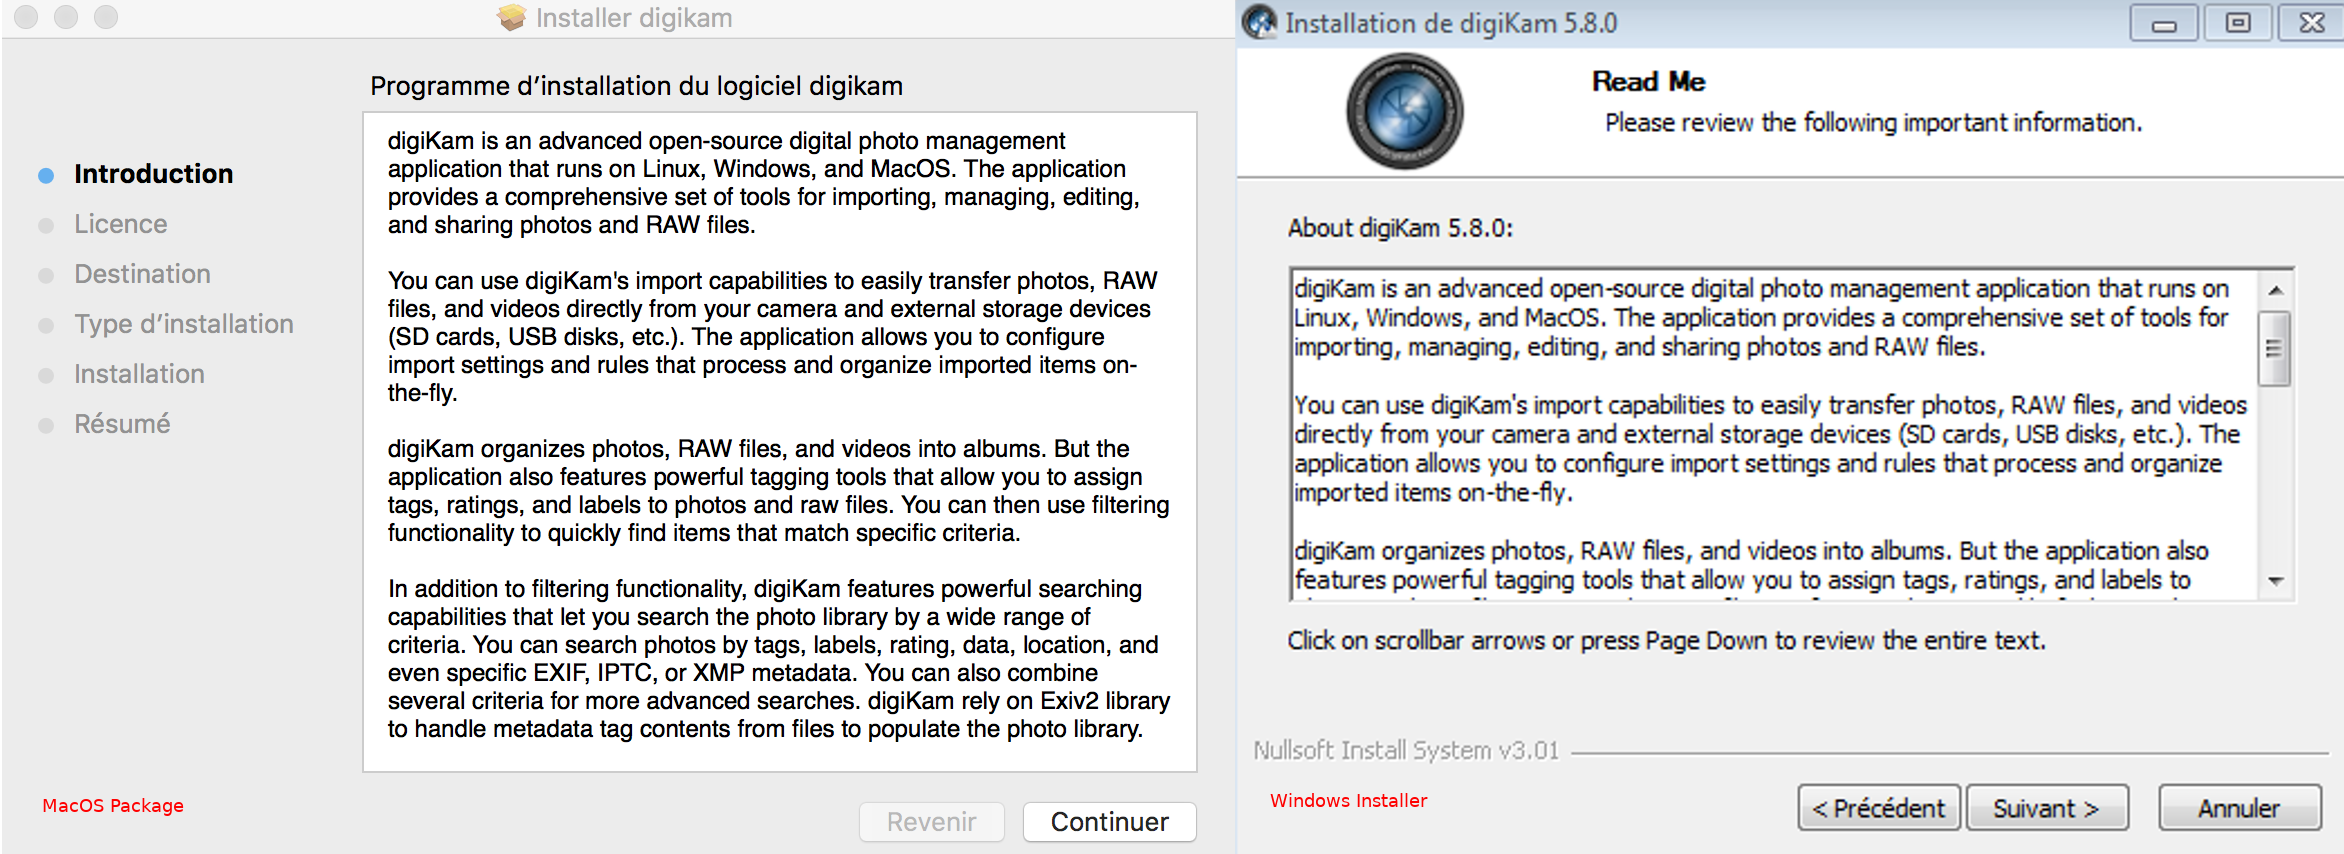 MacOS and Windows digiKam Installers in Action